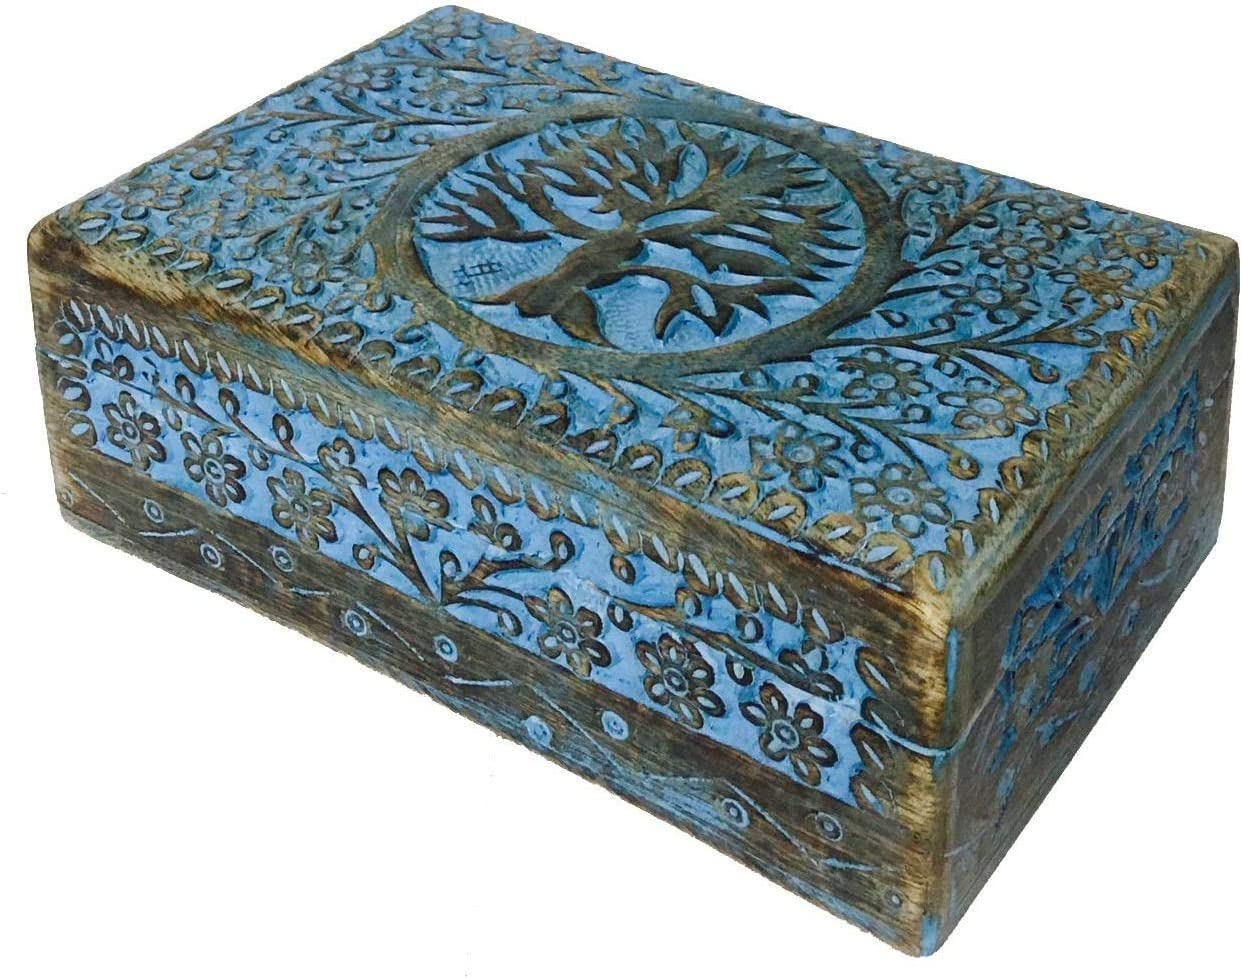 Earthly Home Vintage Worn Blue Wooden Keepsake Jewellery Box with Hinged Lid, Decorative Tree Engraved Box, Trinket Box for Ladies, Jewellery Storage Box, Handcrafted-Home Decor Accessories